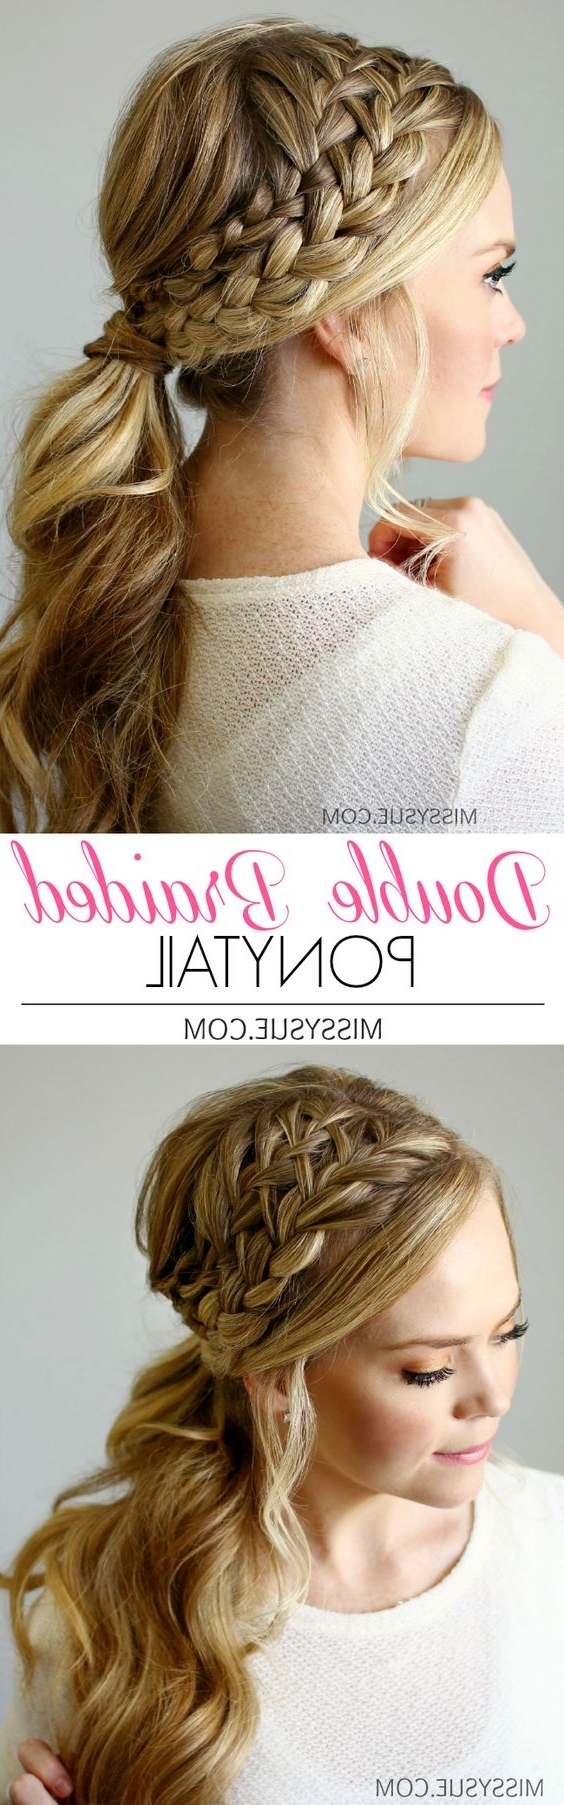 Recent Unique Braided Up Do Ponytail Hairstyles In 30 Simple Easy Ponytail Hairstyles For Lazy Girls – Ponytail Ideas 2018 (Gallery 4 of 20)